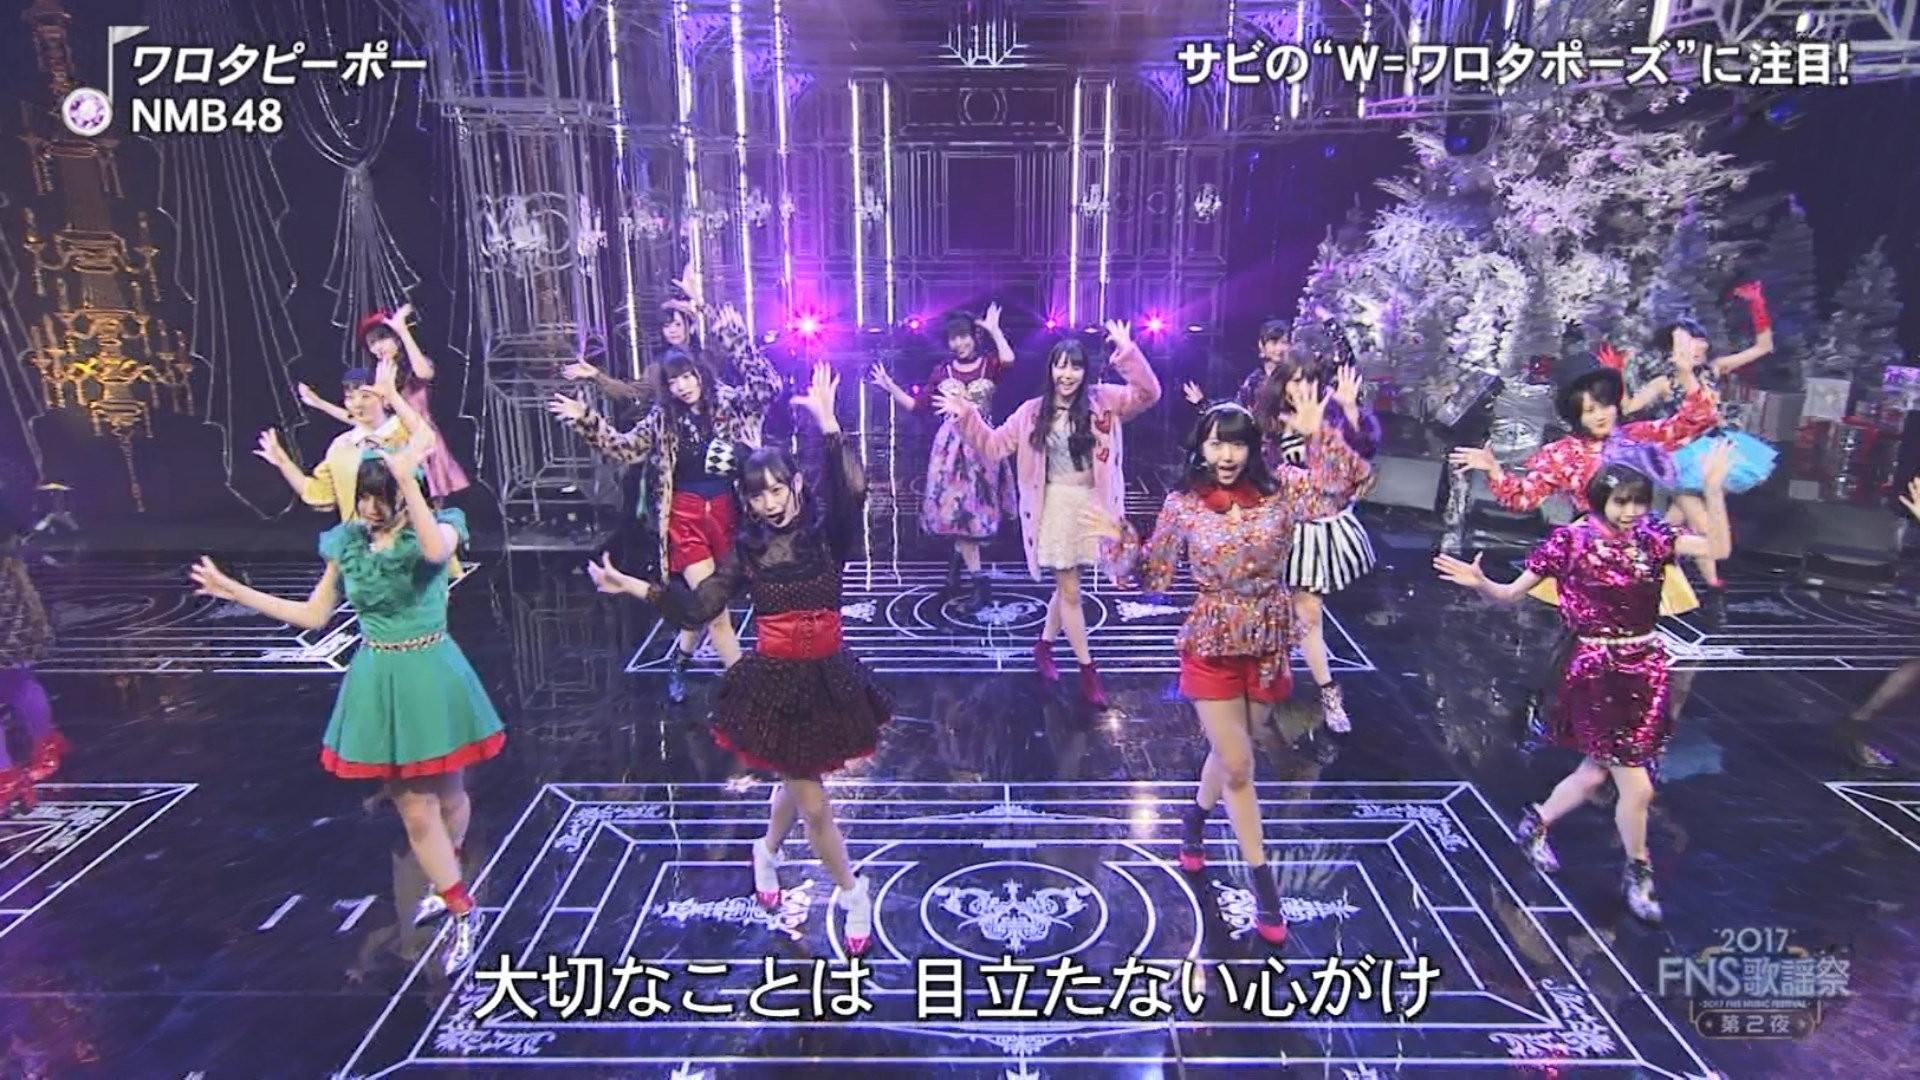 2017FNS歌謡祭第2夜・NMB48ワロタピーポーキャプ画像038